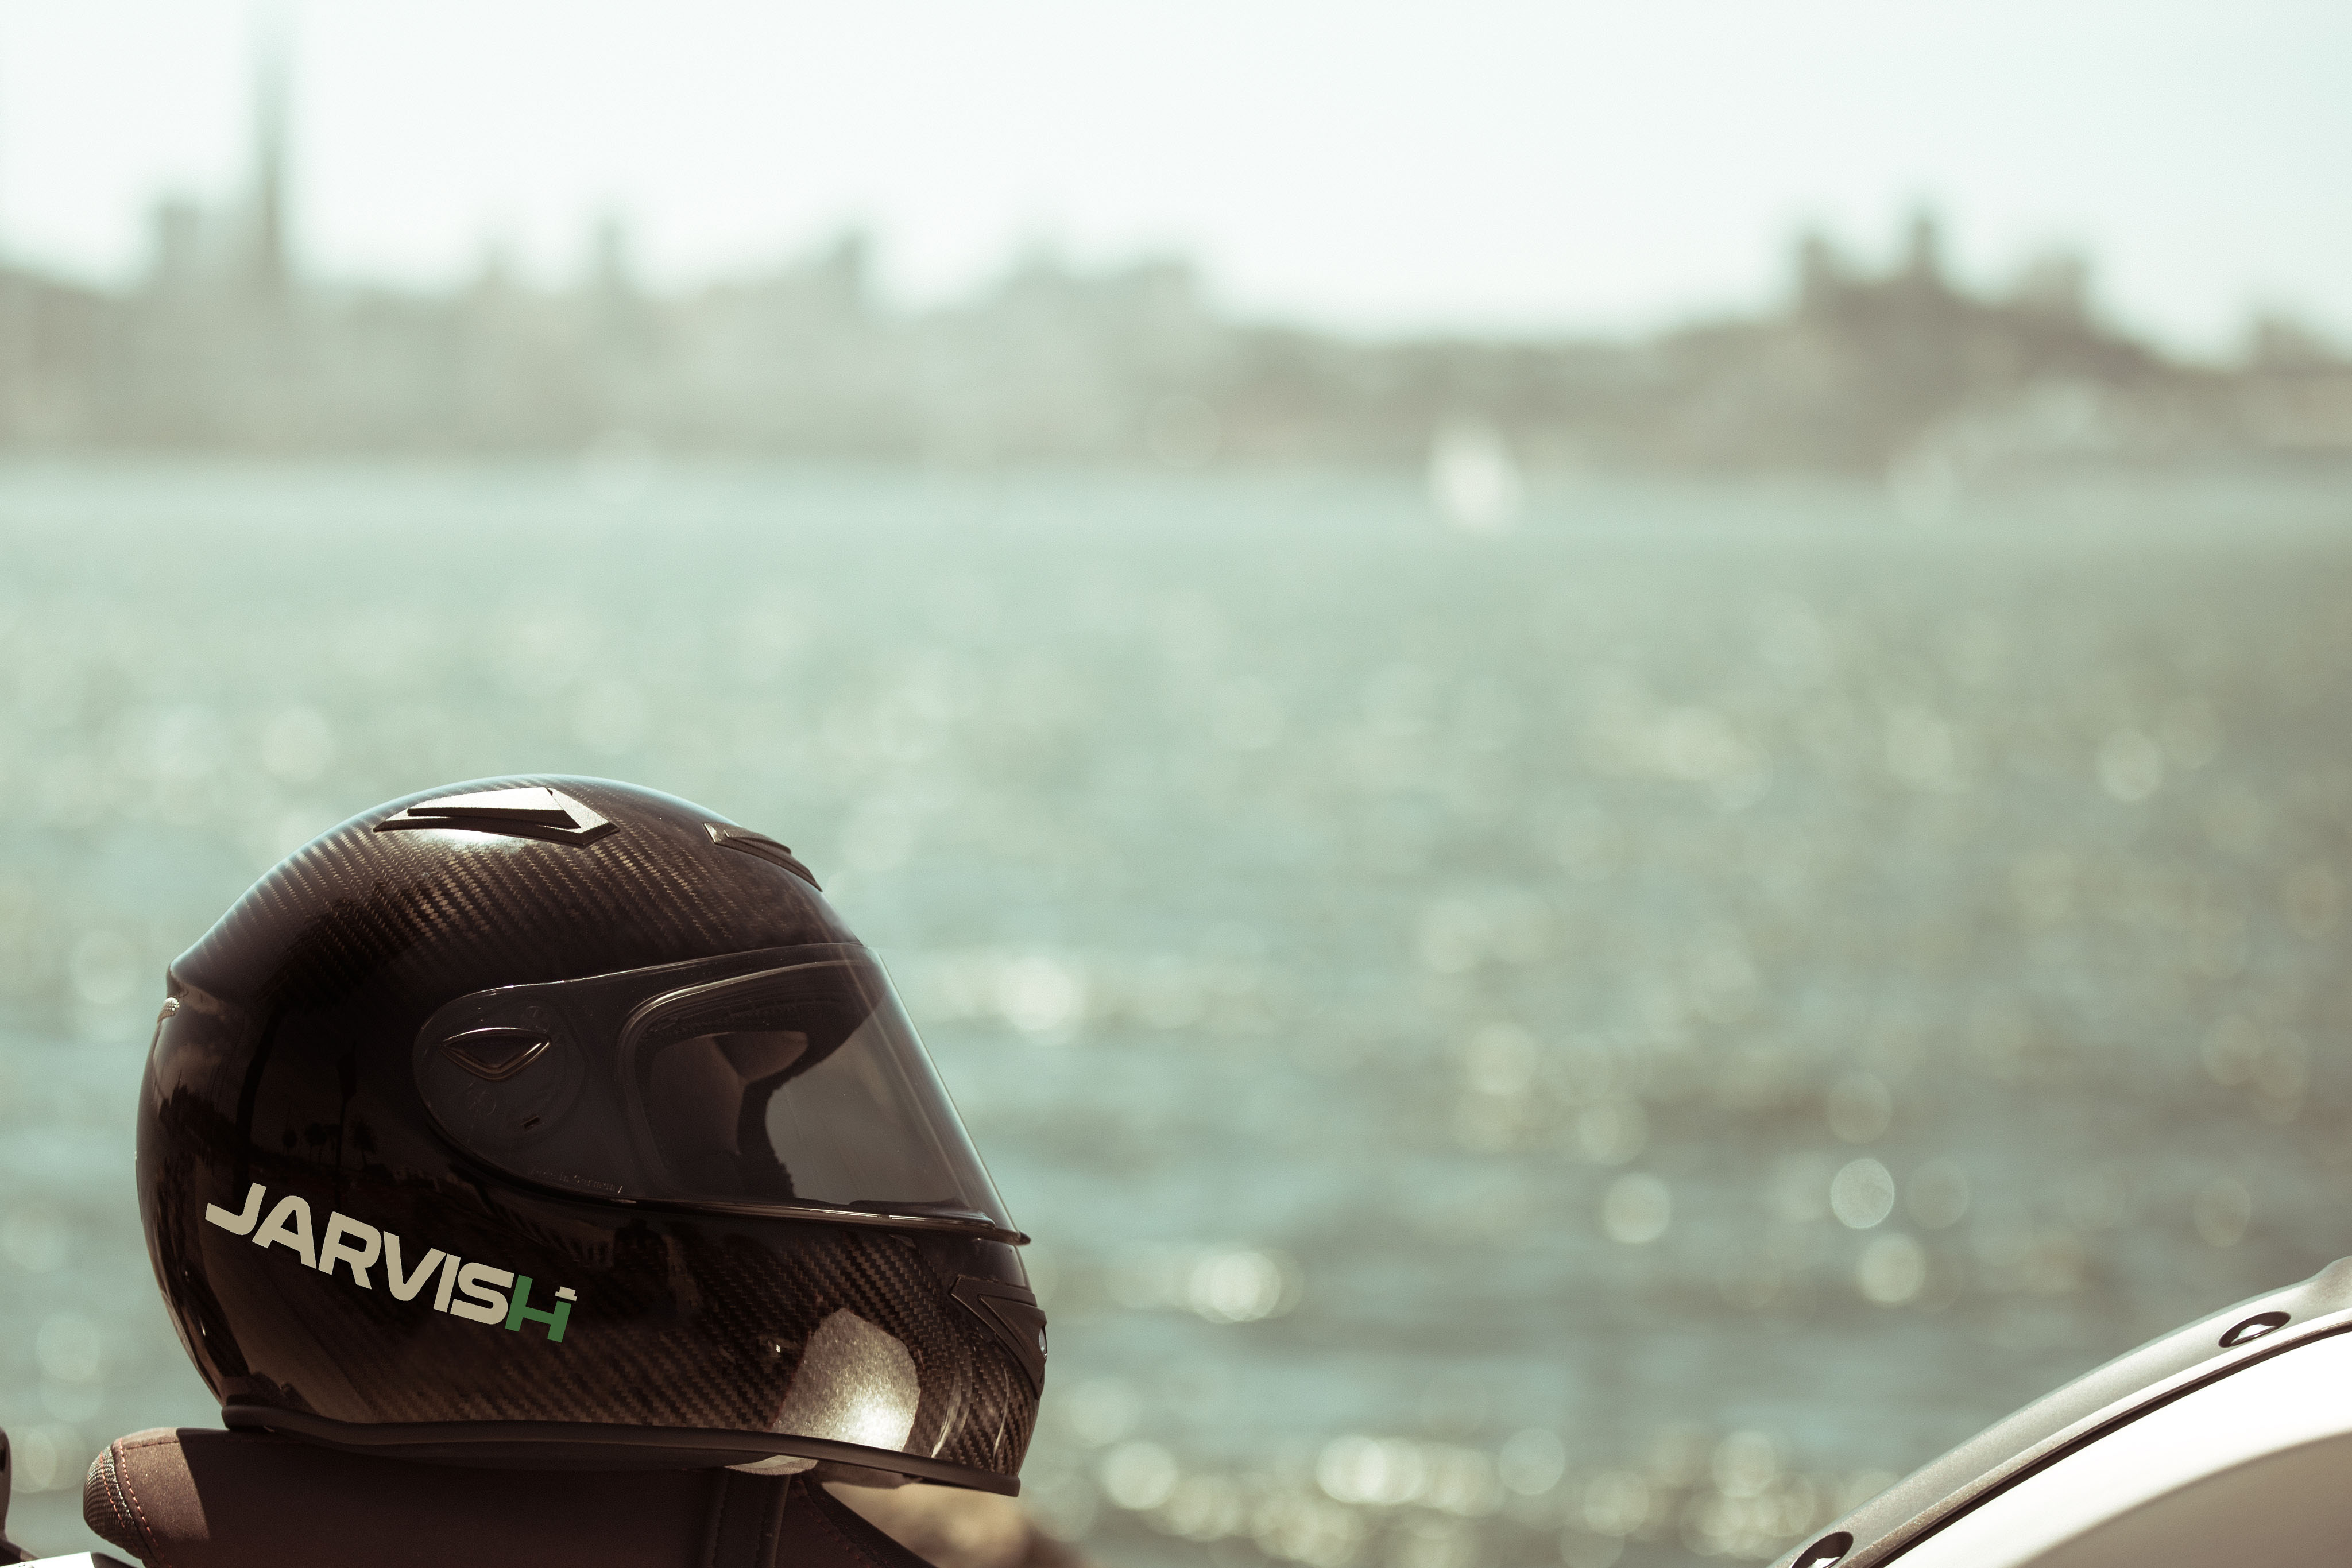 Jarvish Launches X And X Ar Smart Helmets Motorcycle Com News